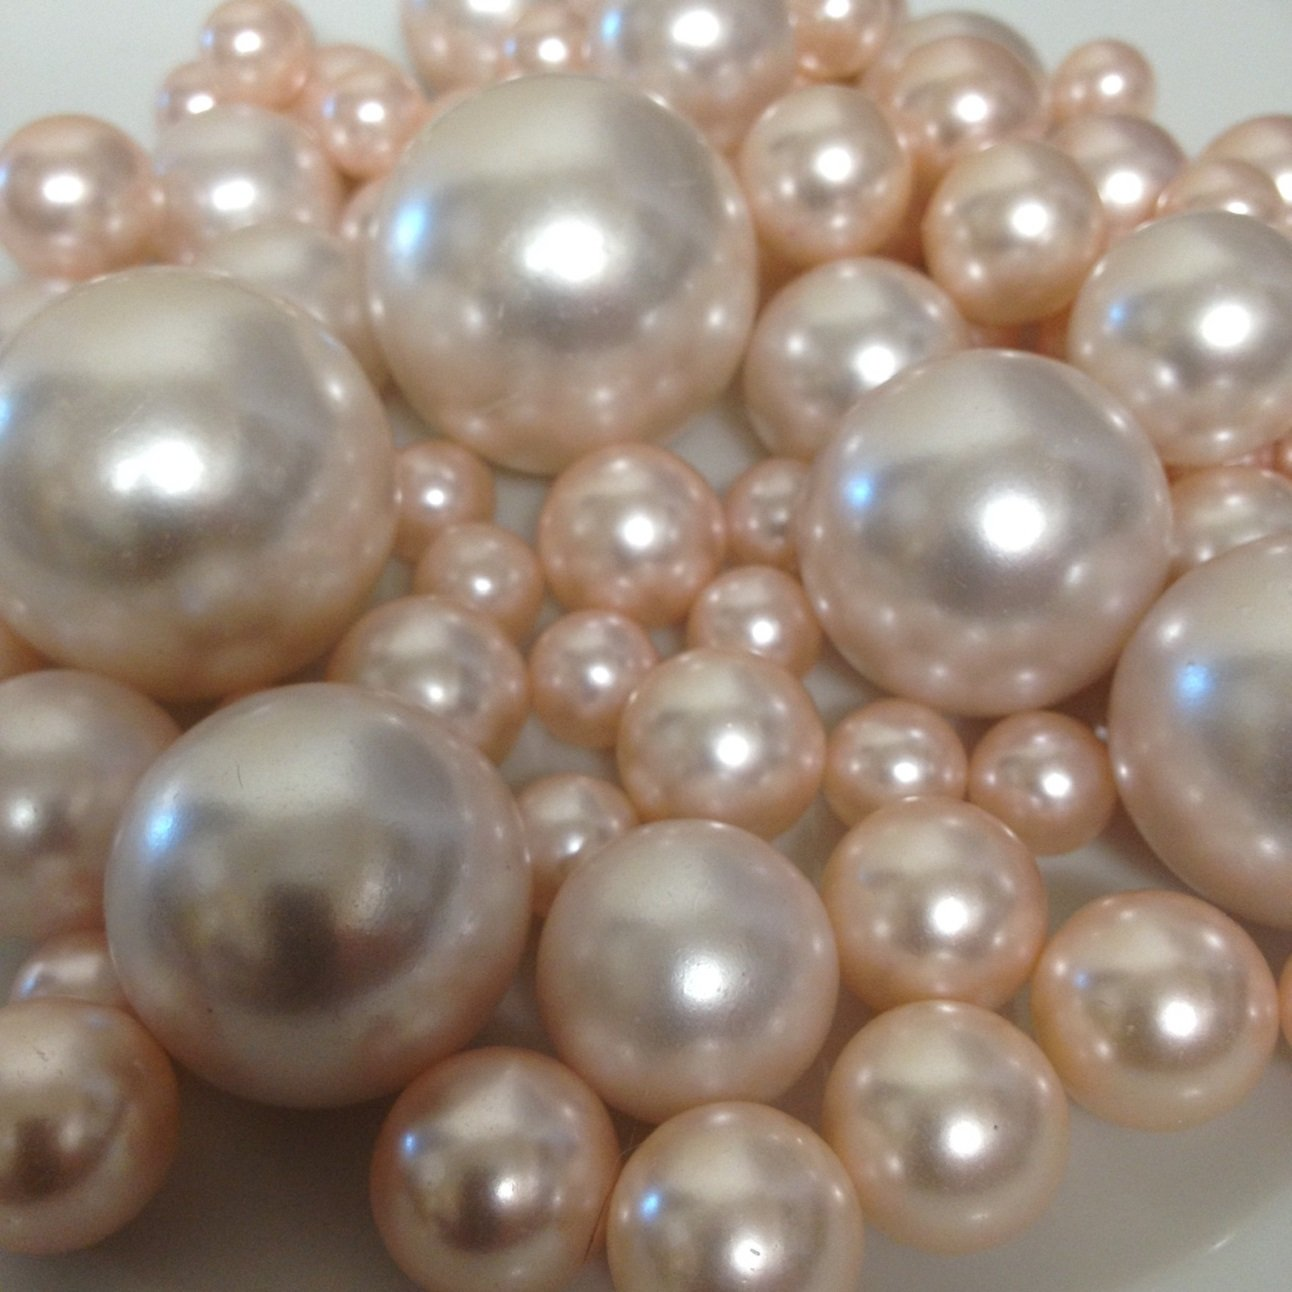 Vase Filler Pearls For Floating Pearl Centerpieces, 80 Blush Pink Pearls Jumbo & Mix Size No Hole Pearls, (Transparent Gel Beads Required To Create Floating Pearls Sold separately) by Floating Pearls